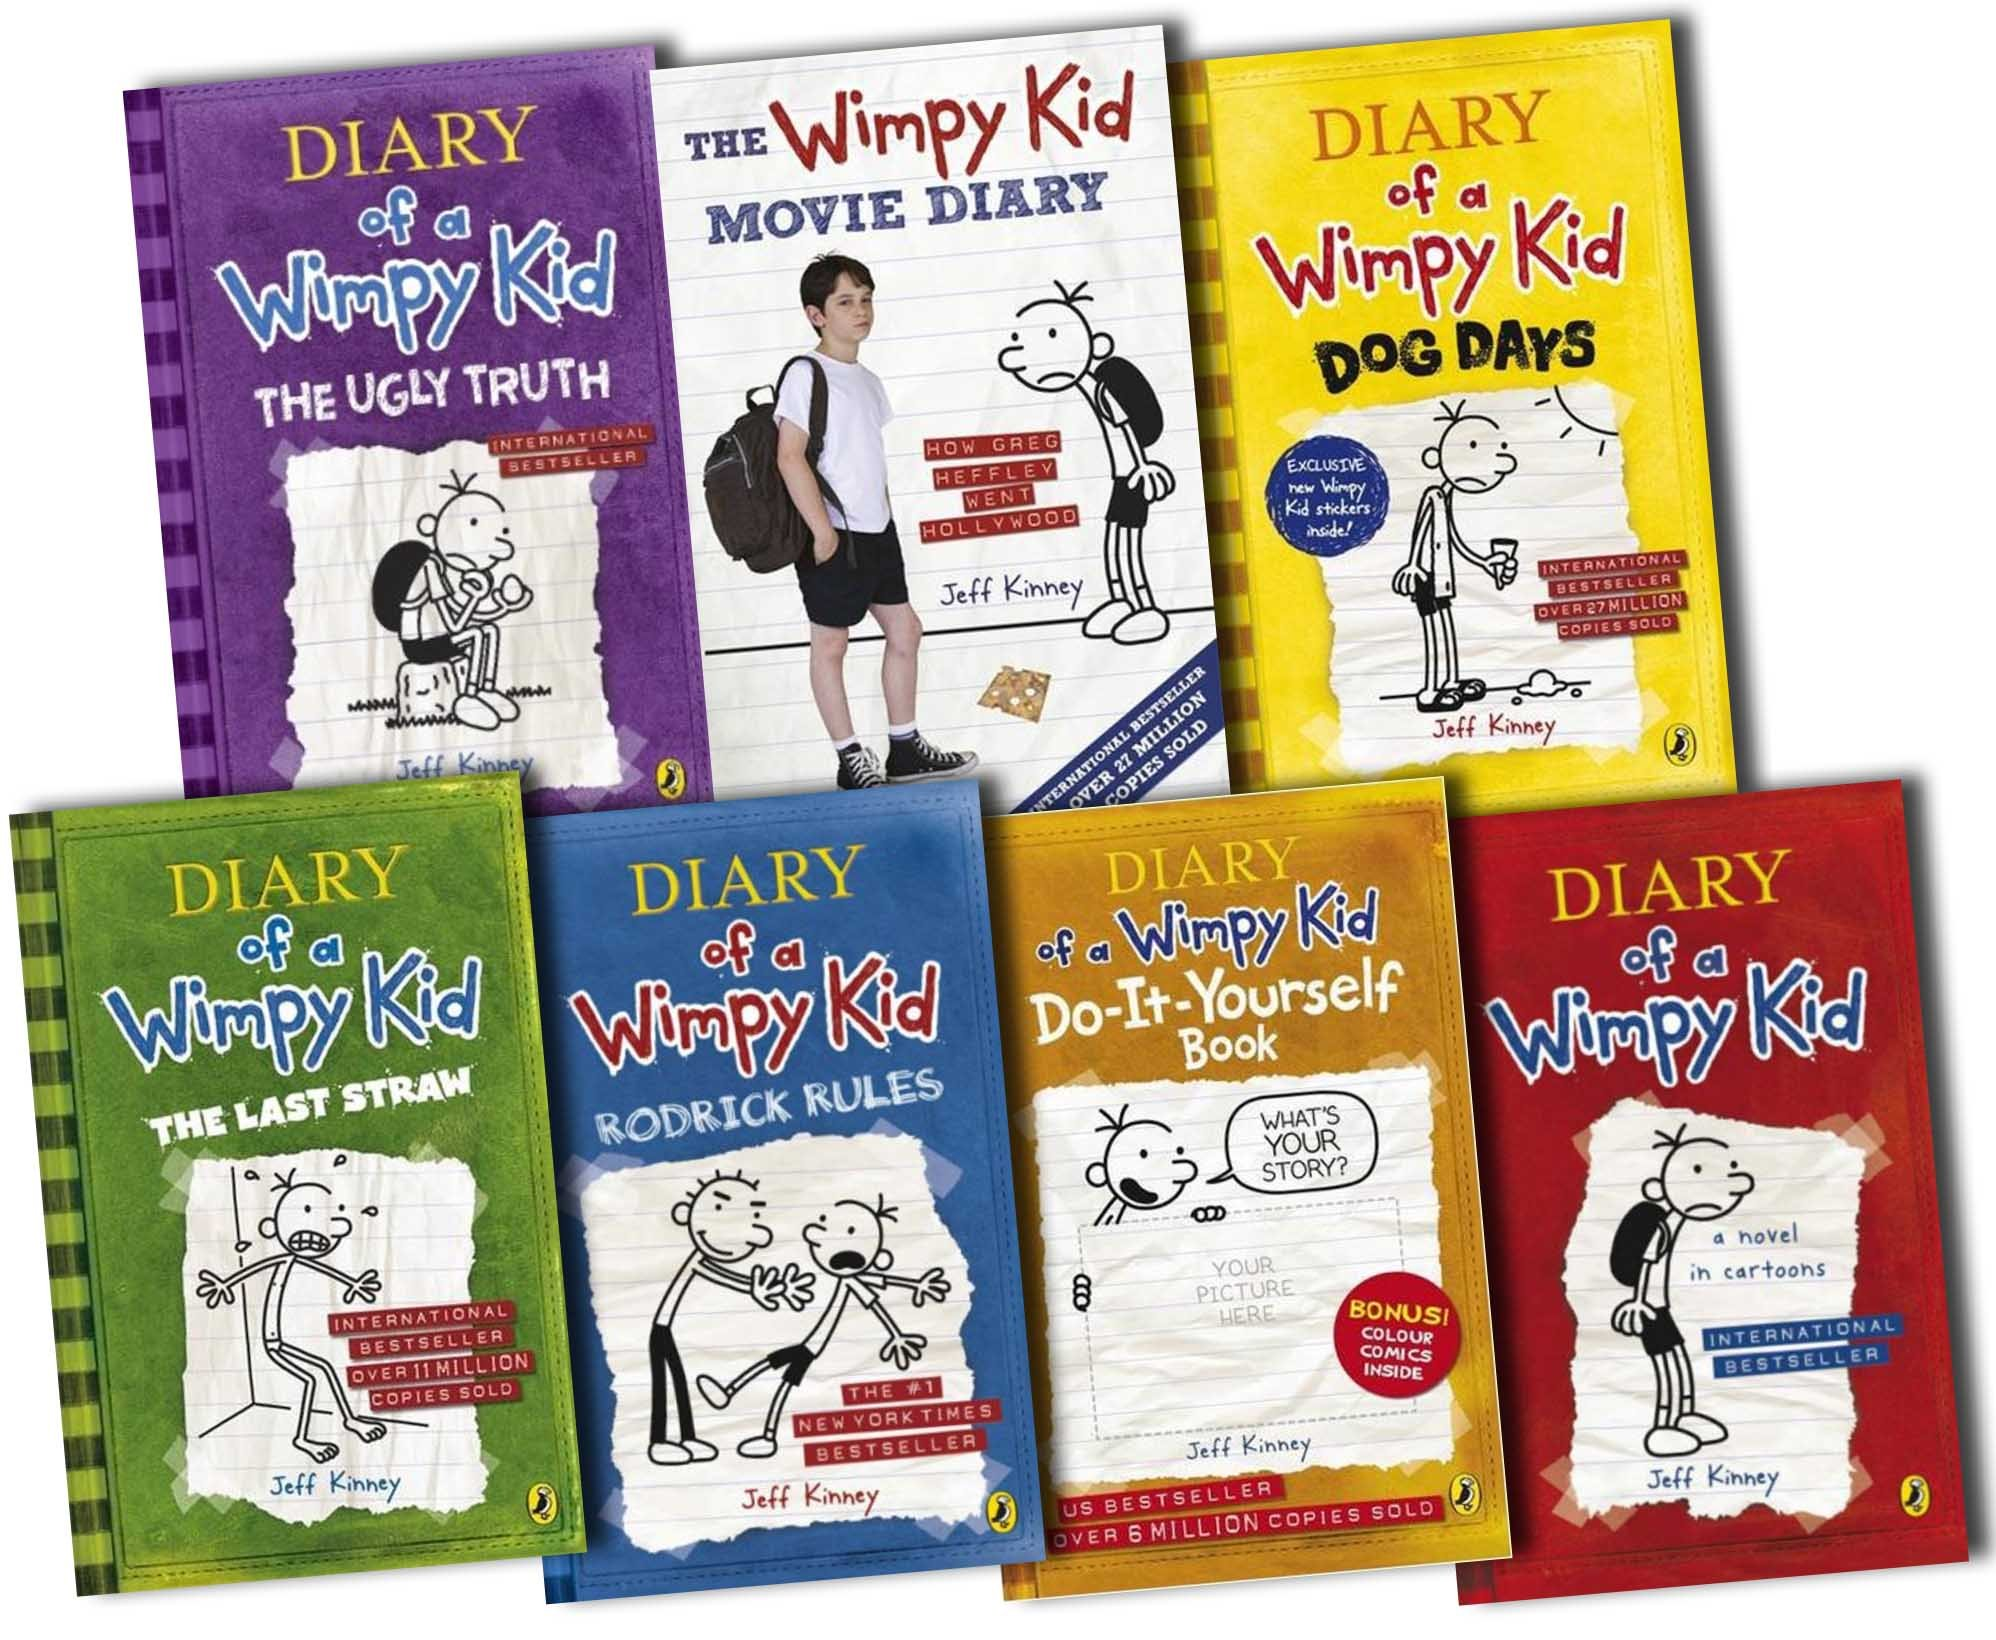 Diary of a wimpy kid collection 7 books set pack by jeff kinney diary of a wimpy kid collection 7 books set pack by jeff kinney jeff kinney 9780141351698 amazon books solutioingenieria Image collections